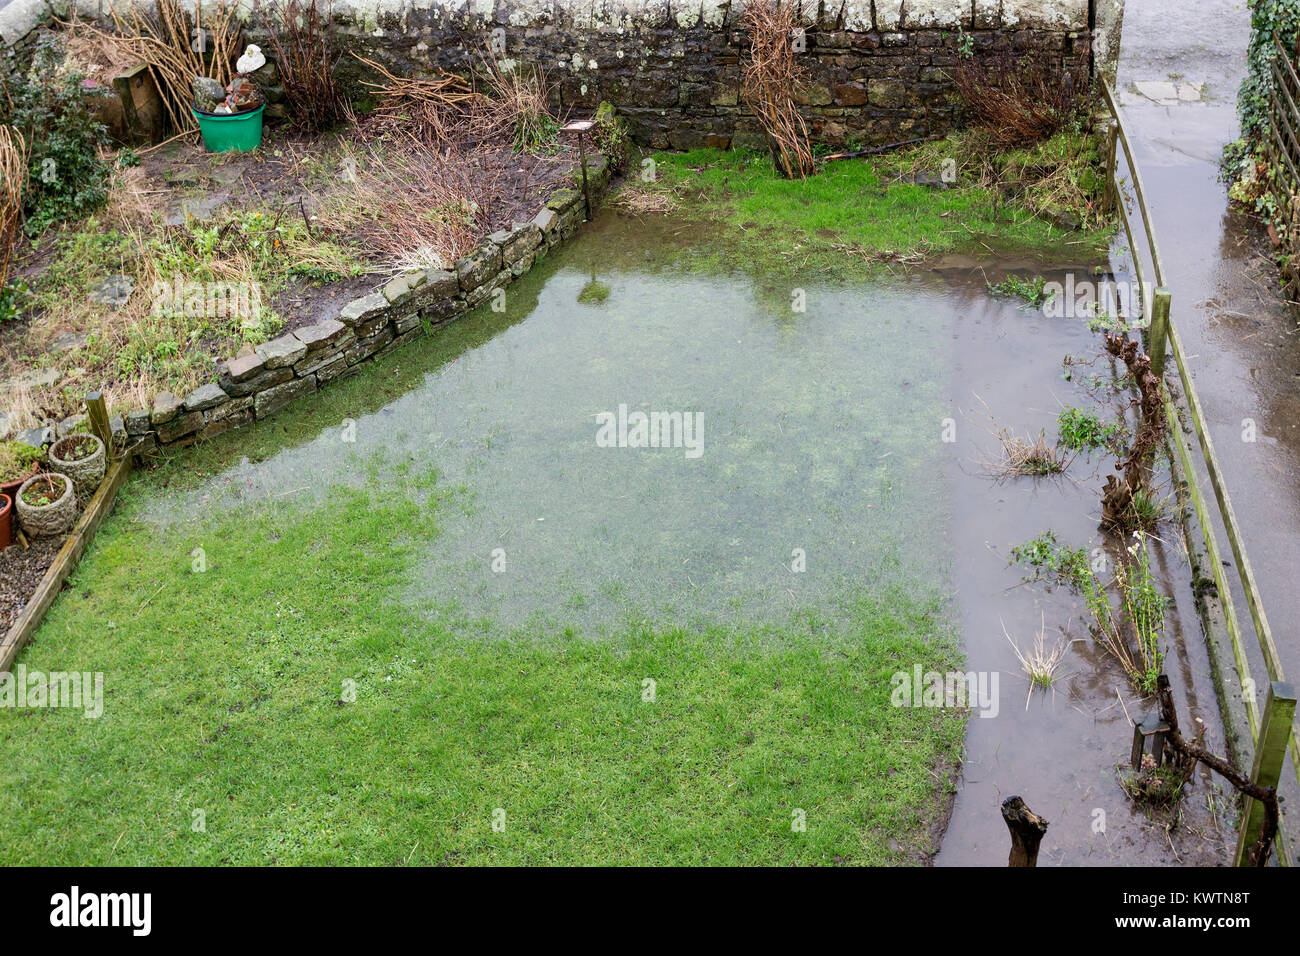 Flooded Garden Caused by Heavy Rain, England, UK - Stock Image